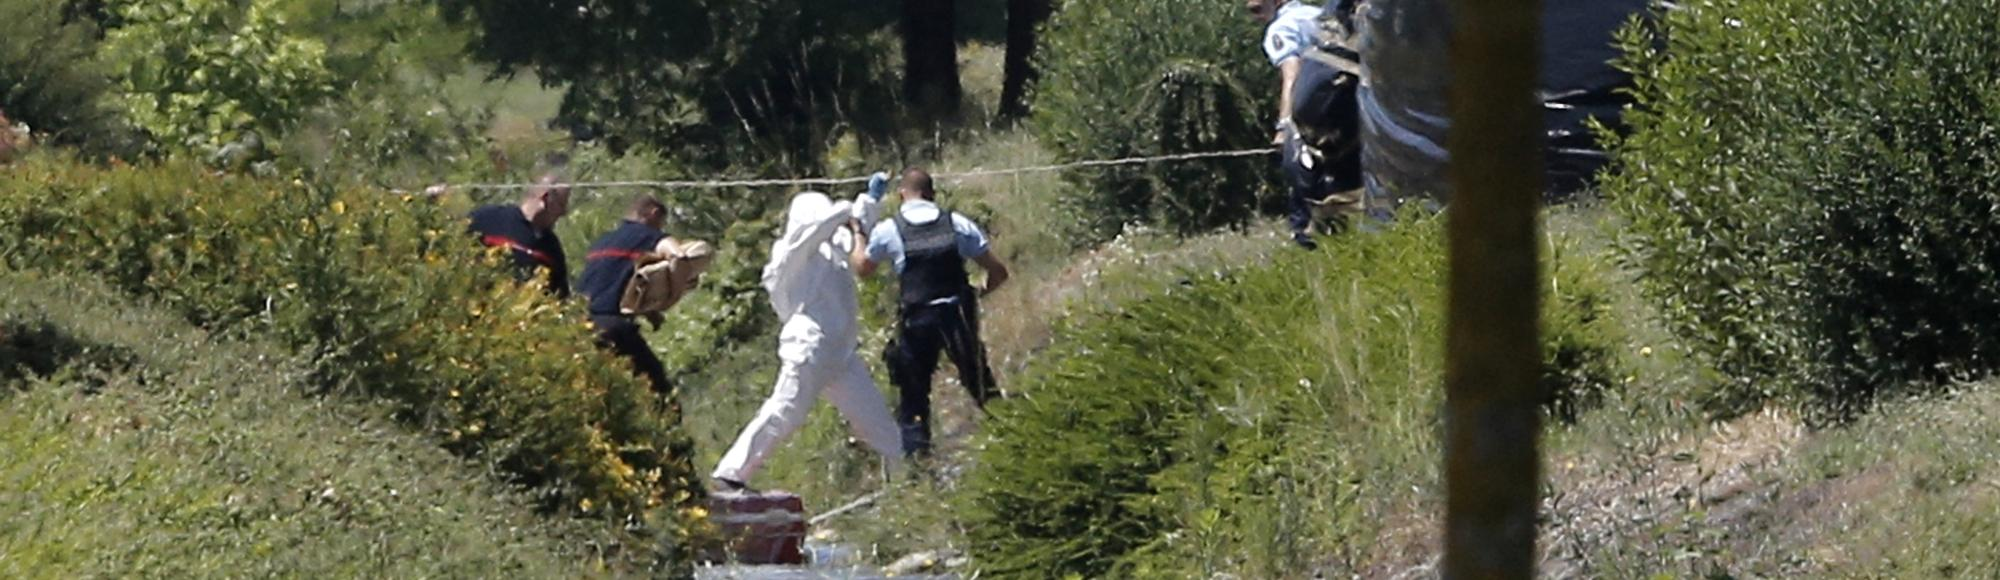 Man Decapitated in France and Islamist Banners Found on Site